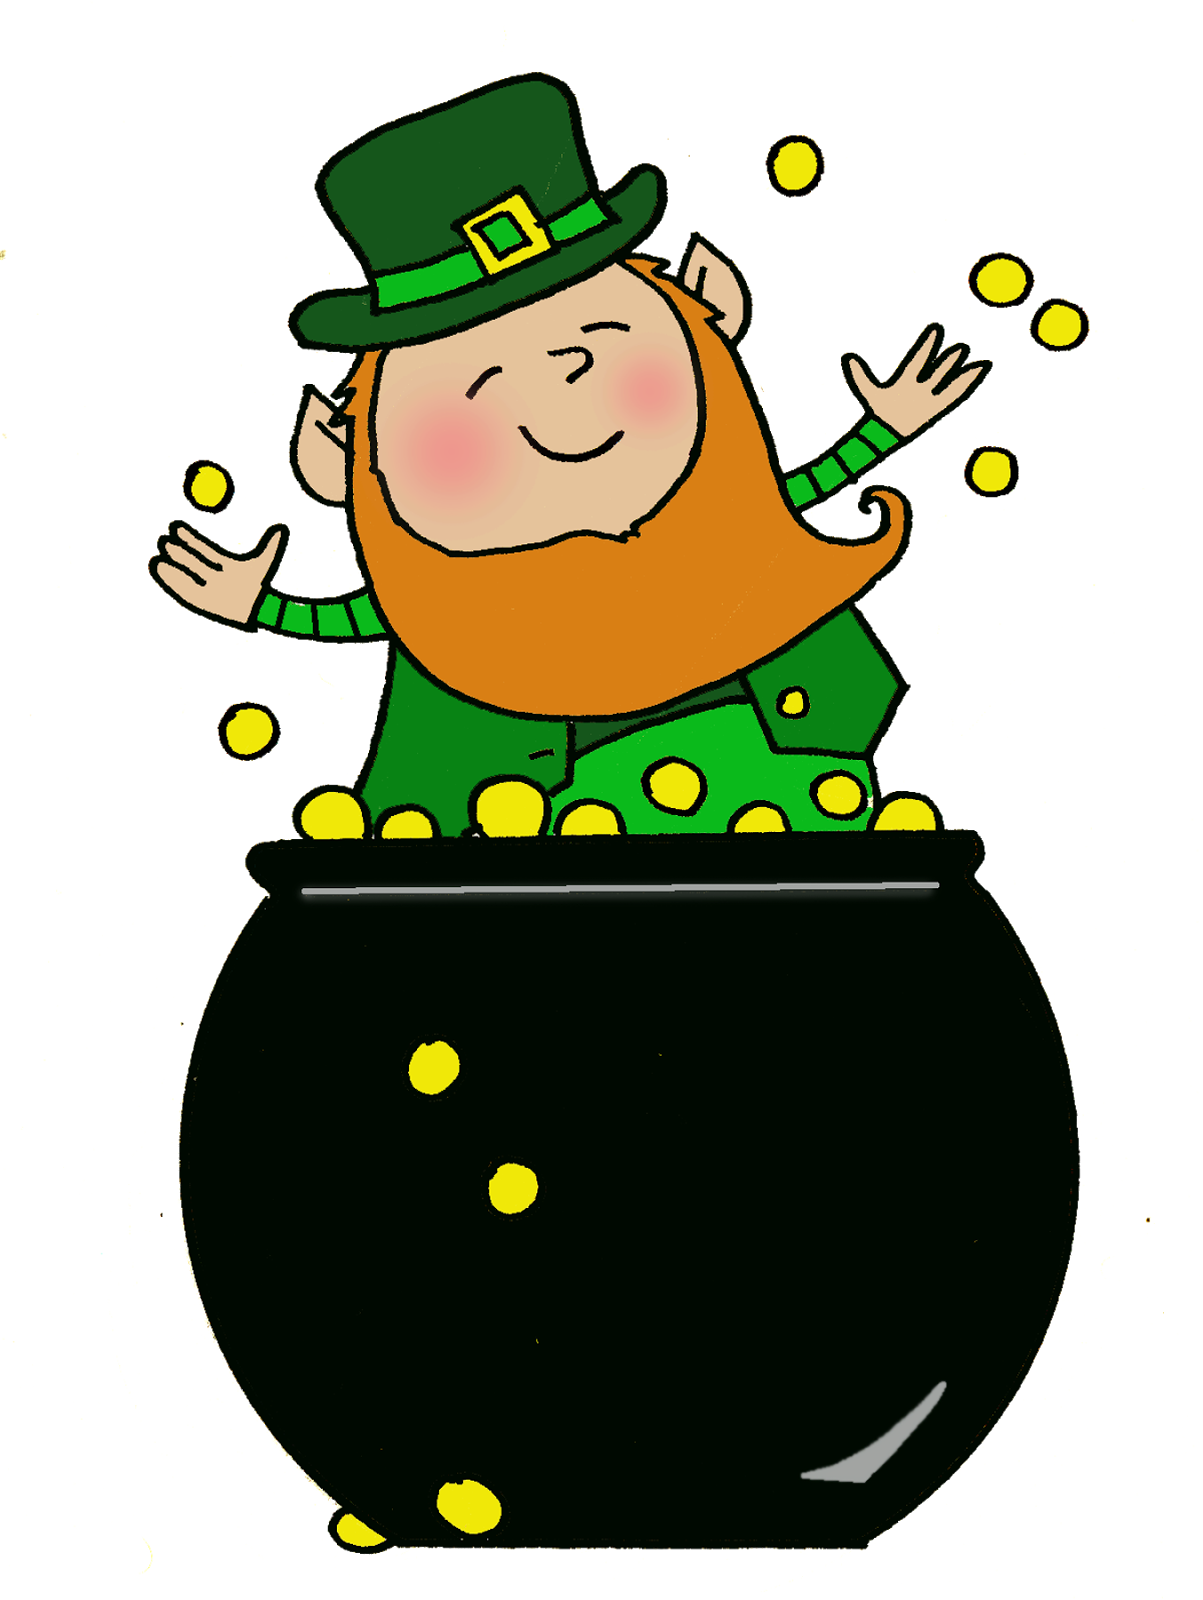 Lunchbox clipart morning snack. Pot of gold leprechaun